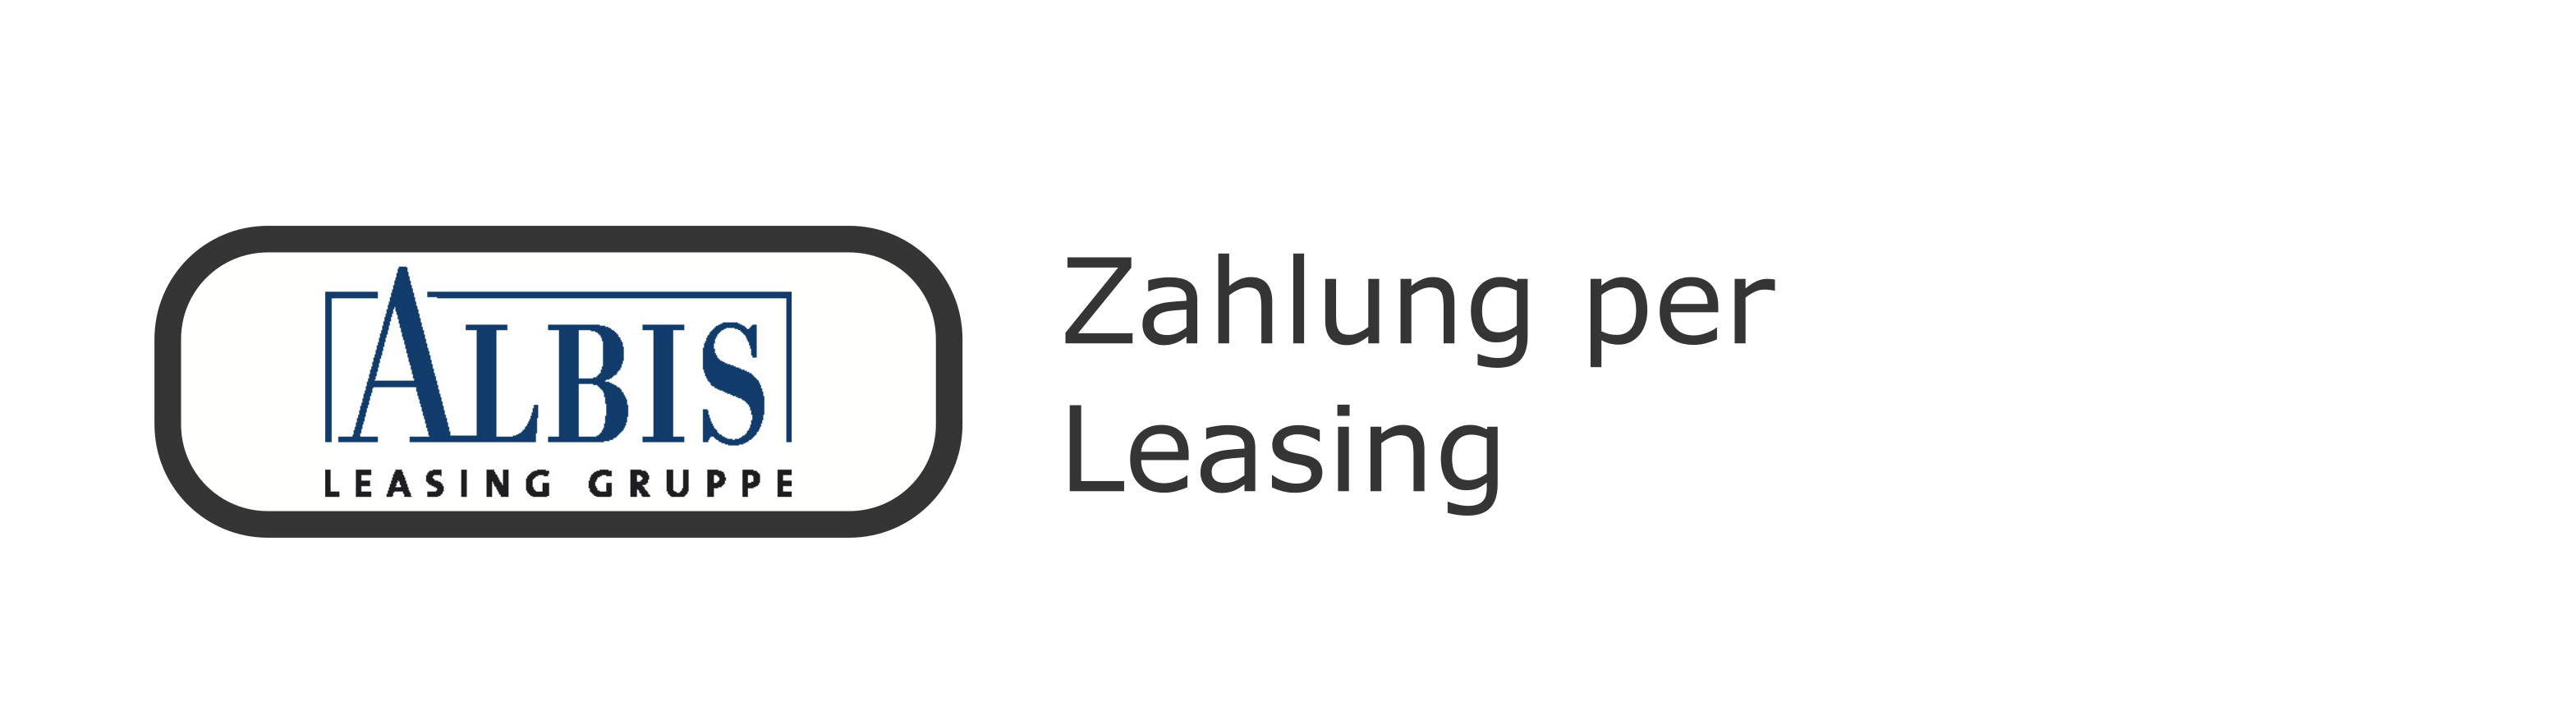 Zahlung per Leasing